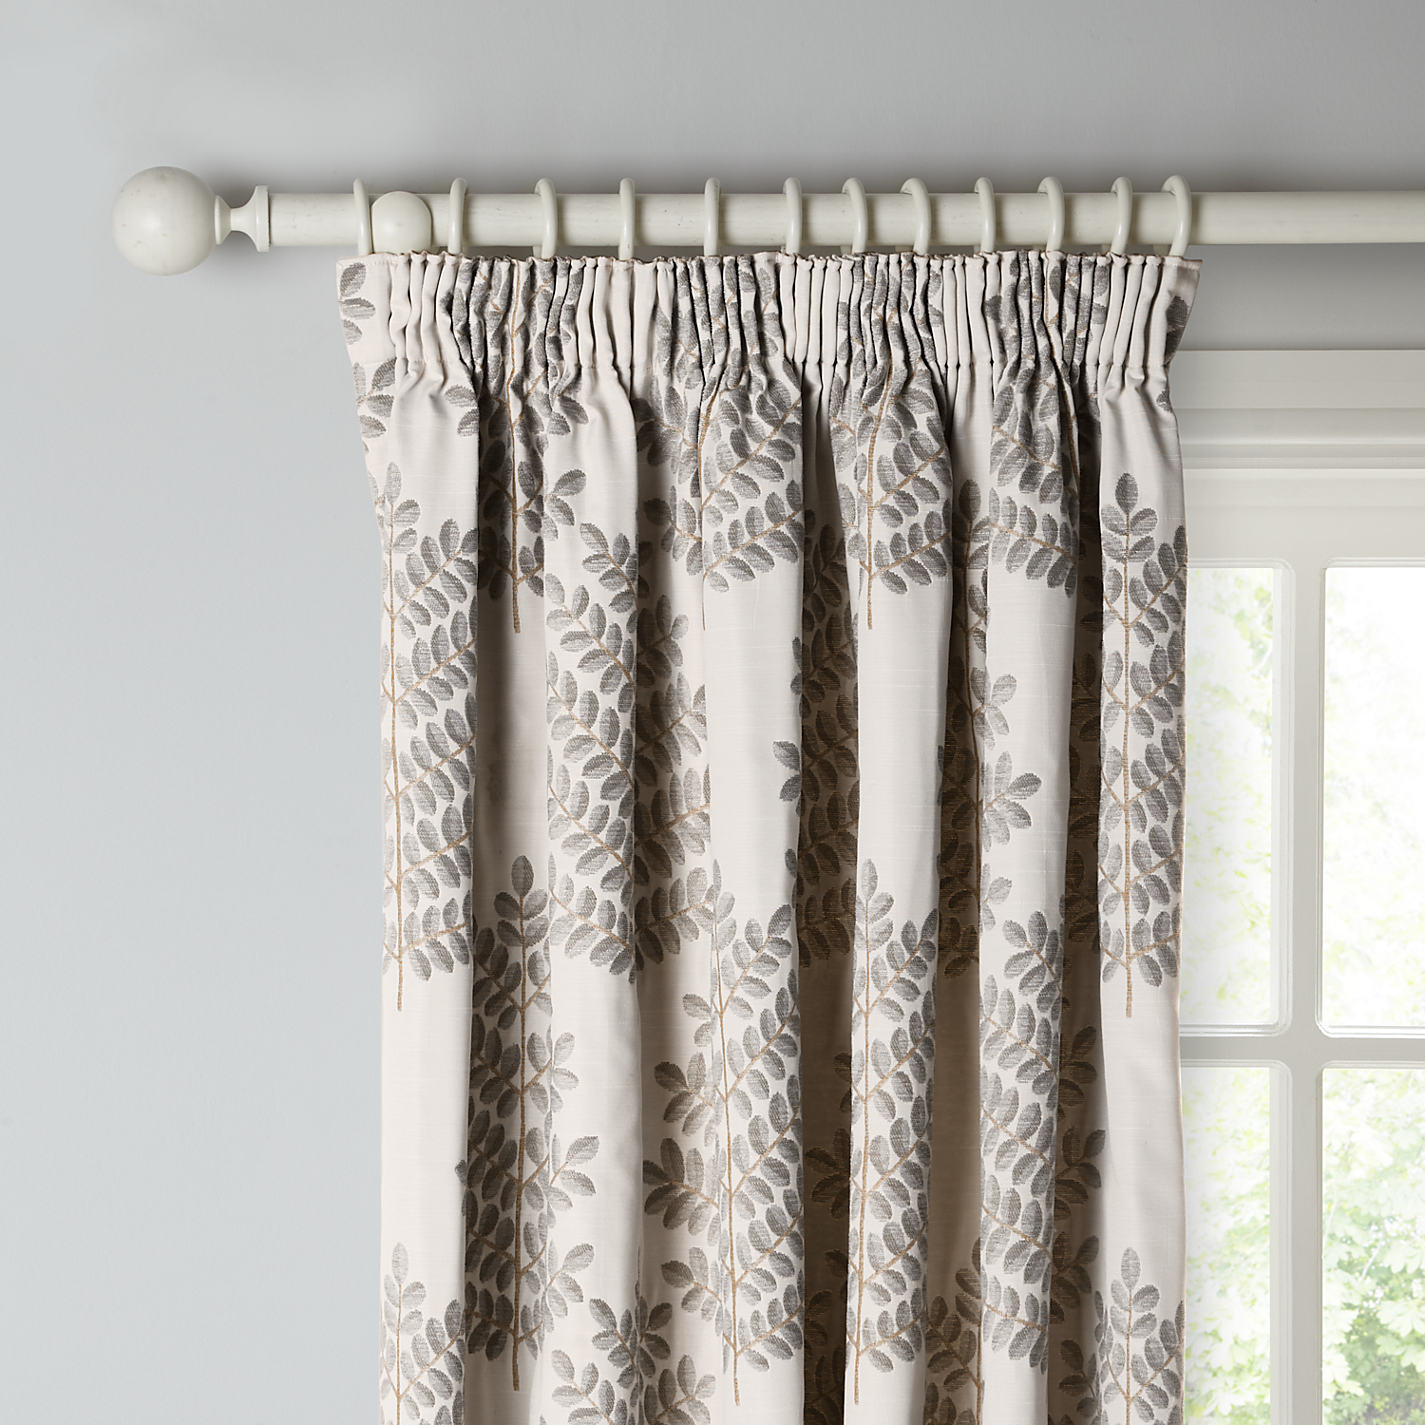 Bedroom Curtains  Patterned amp Plain Curtains  Next